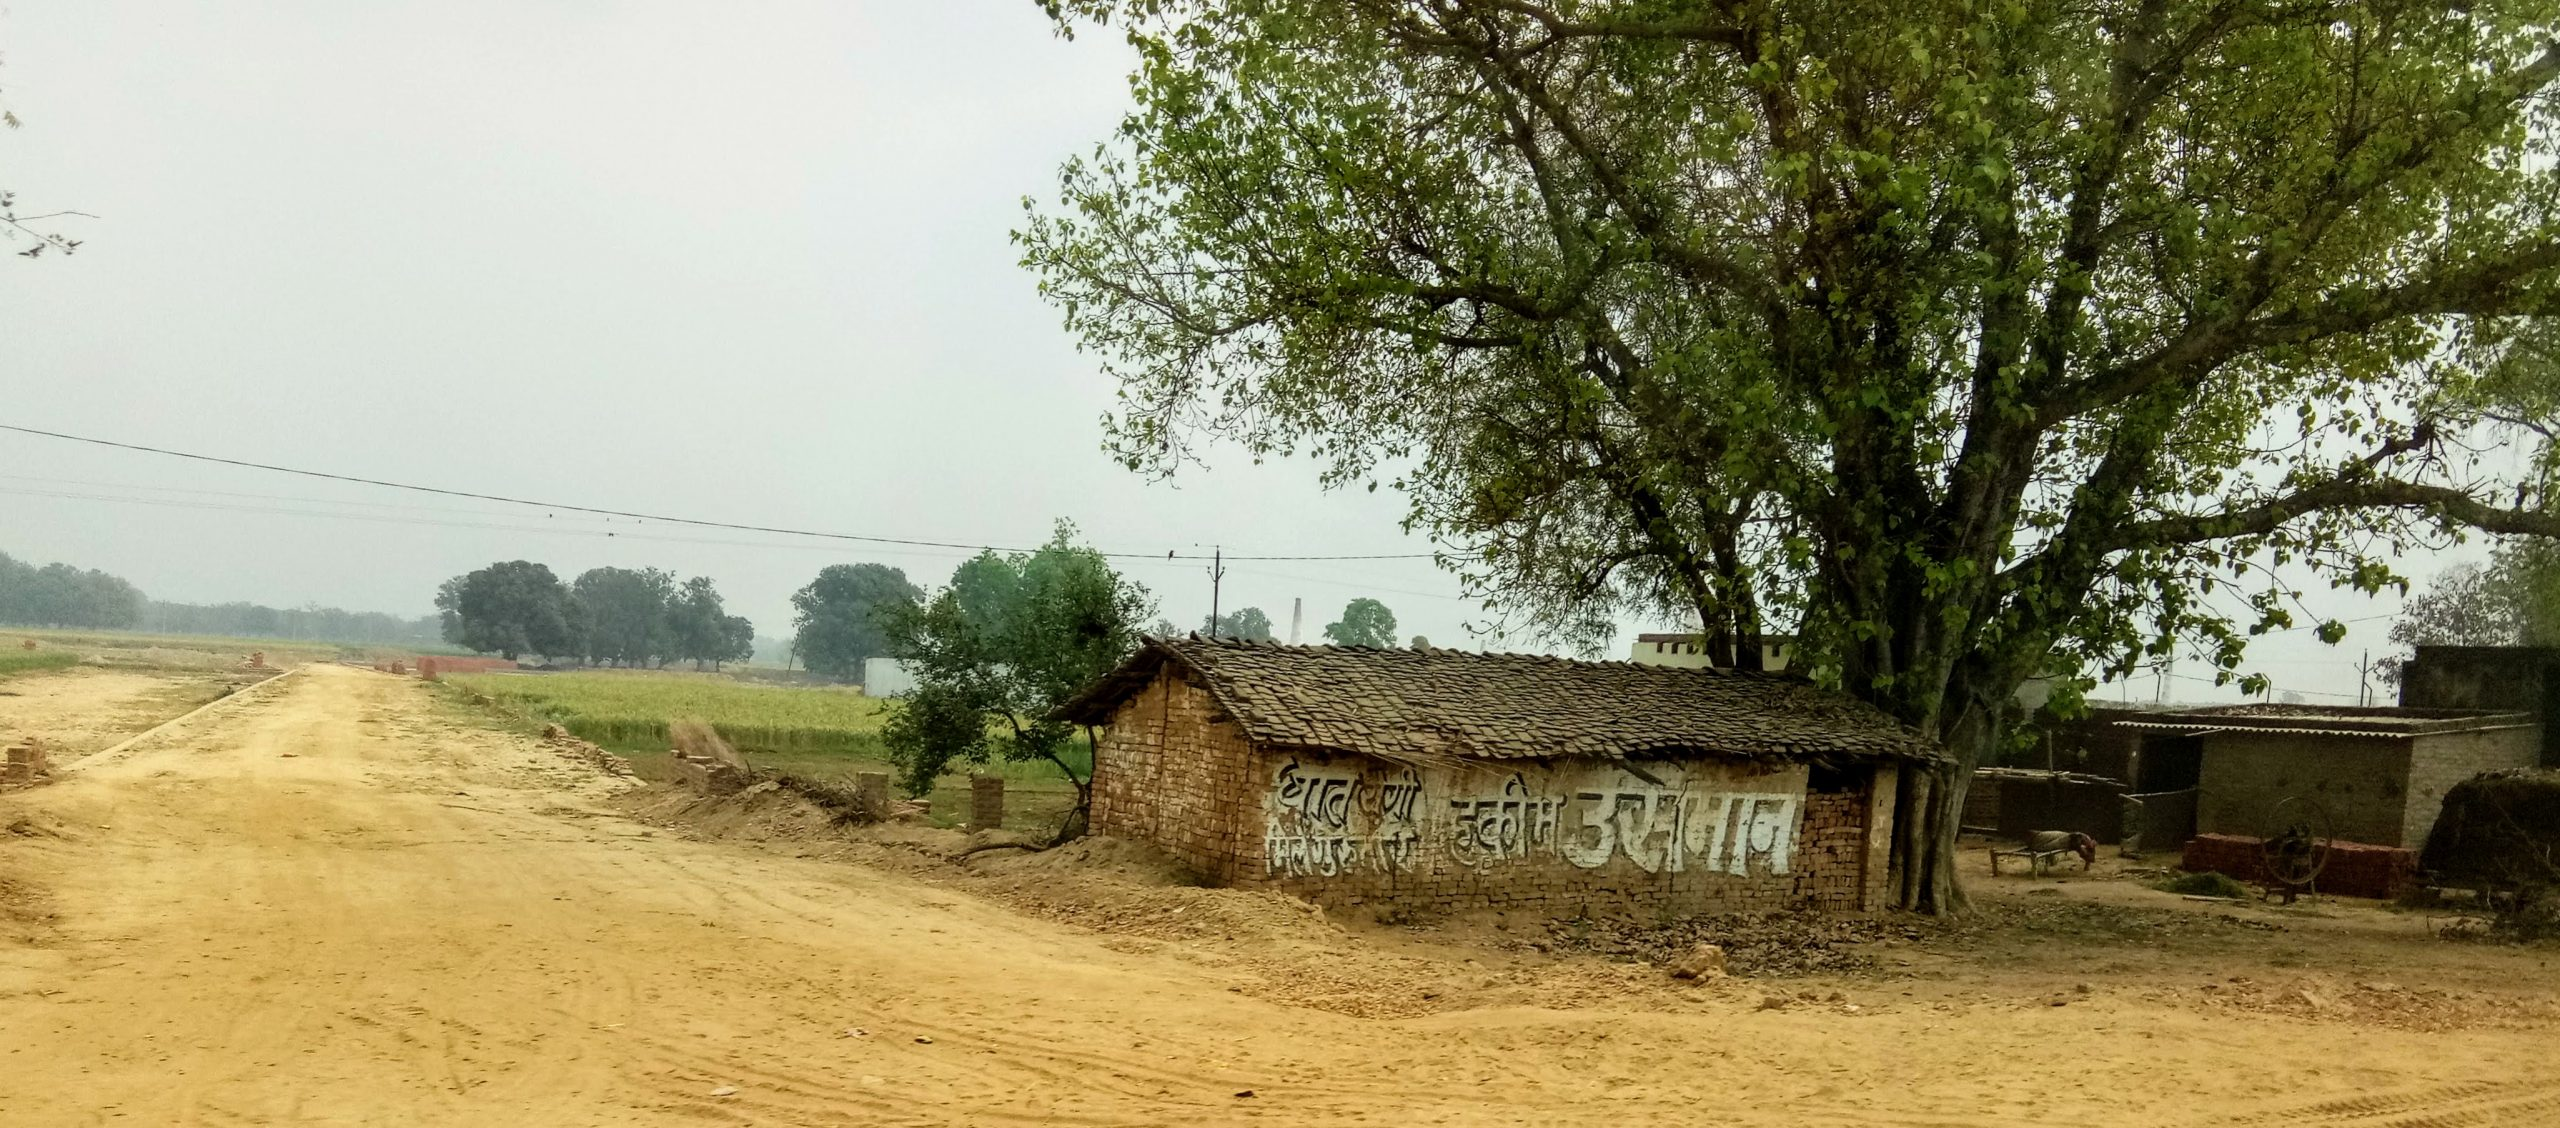 A picture of a rural area